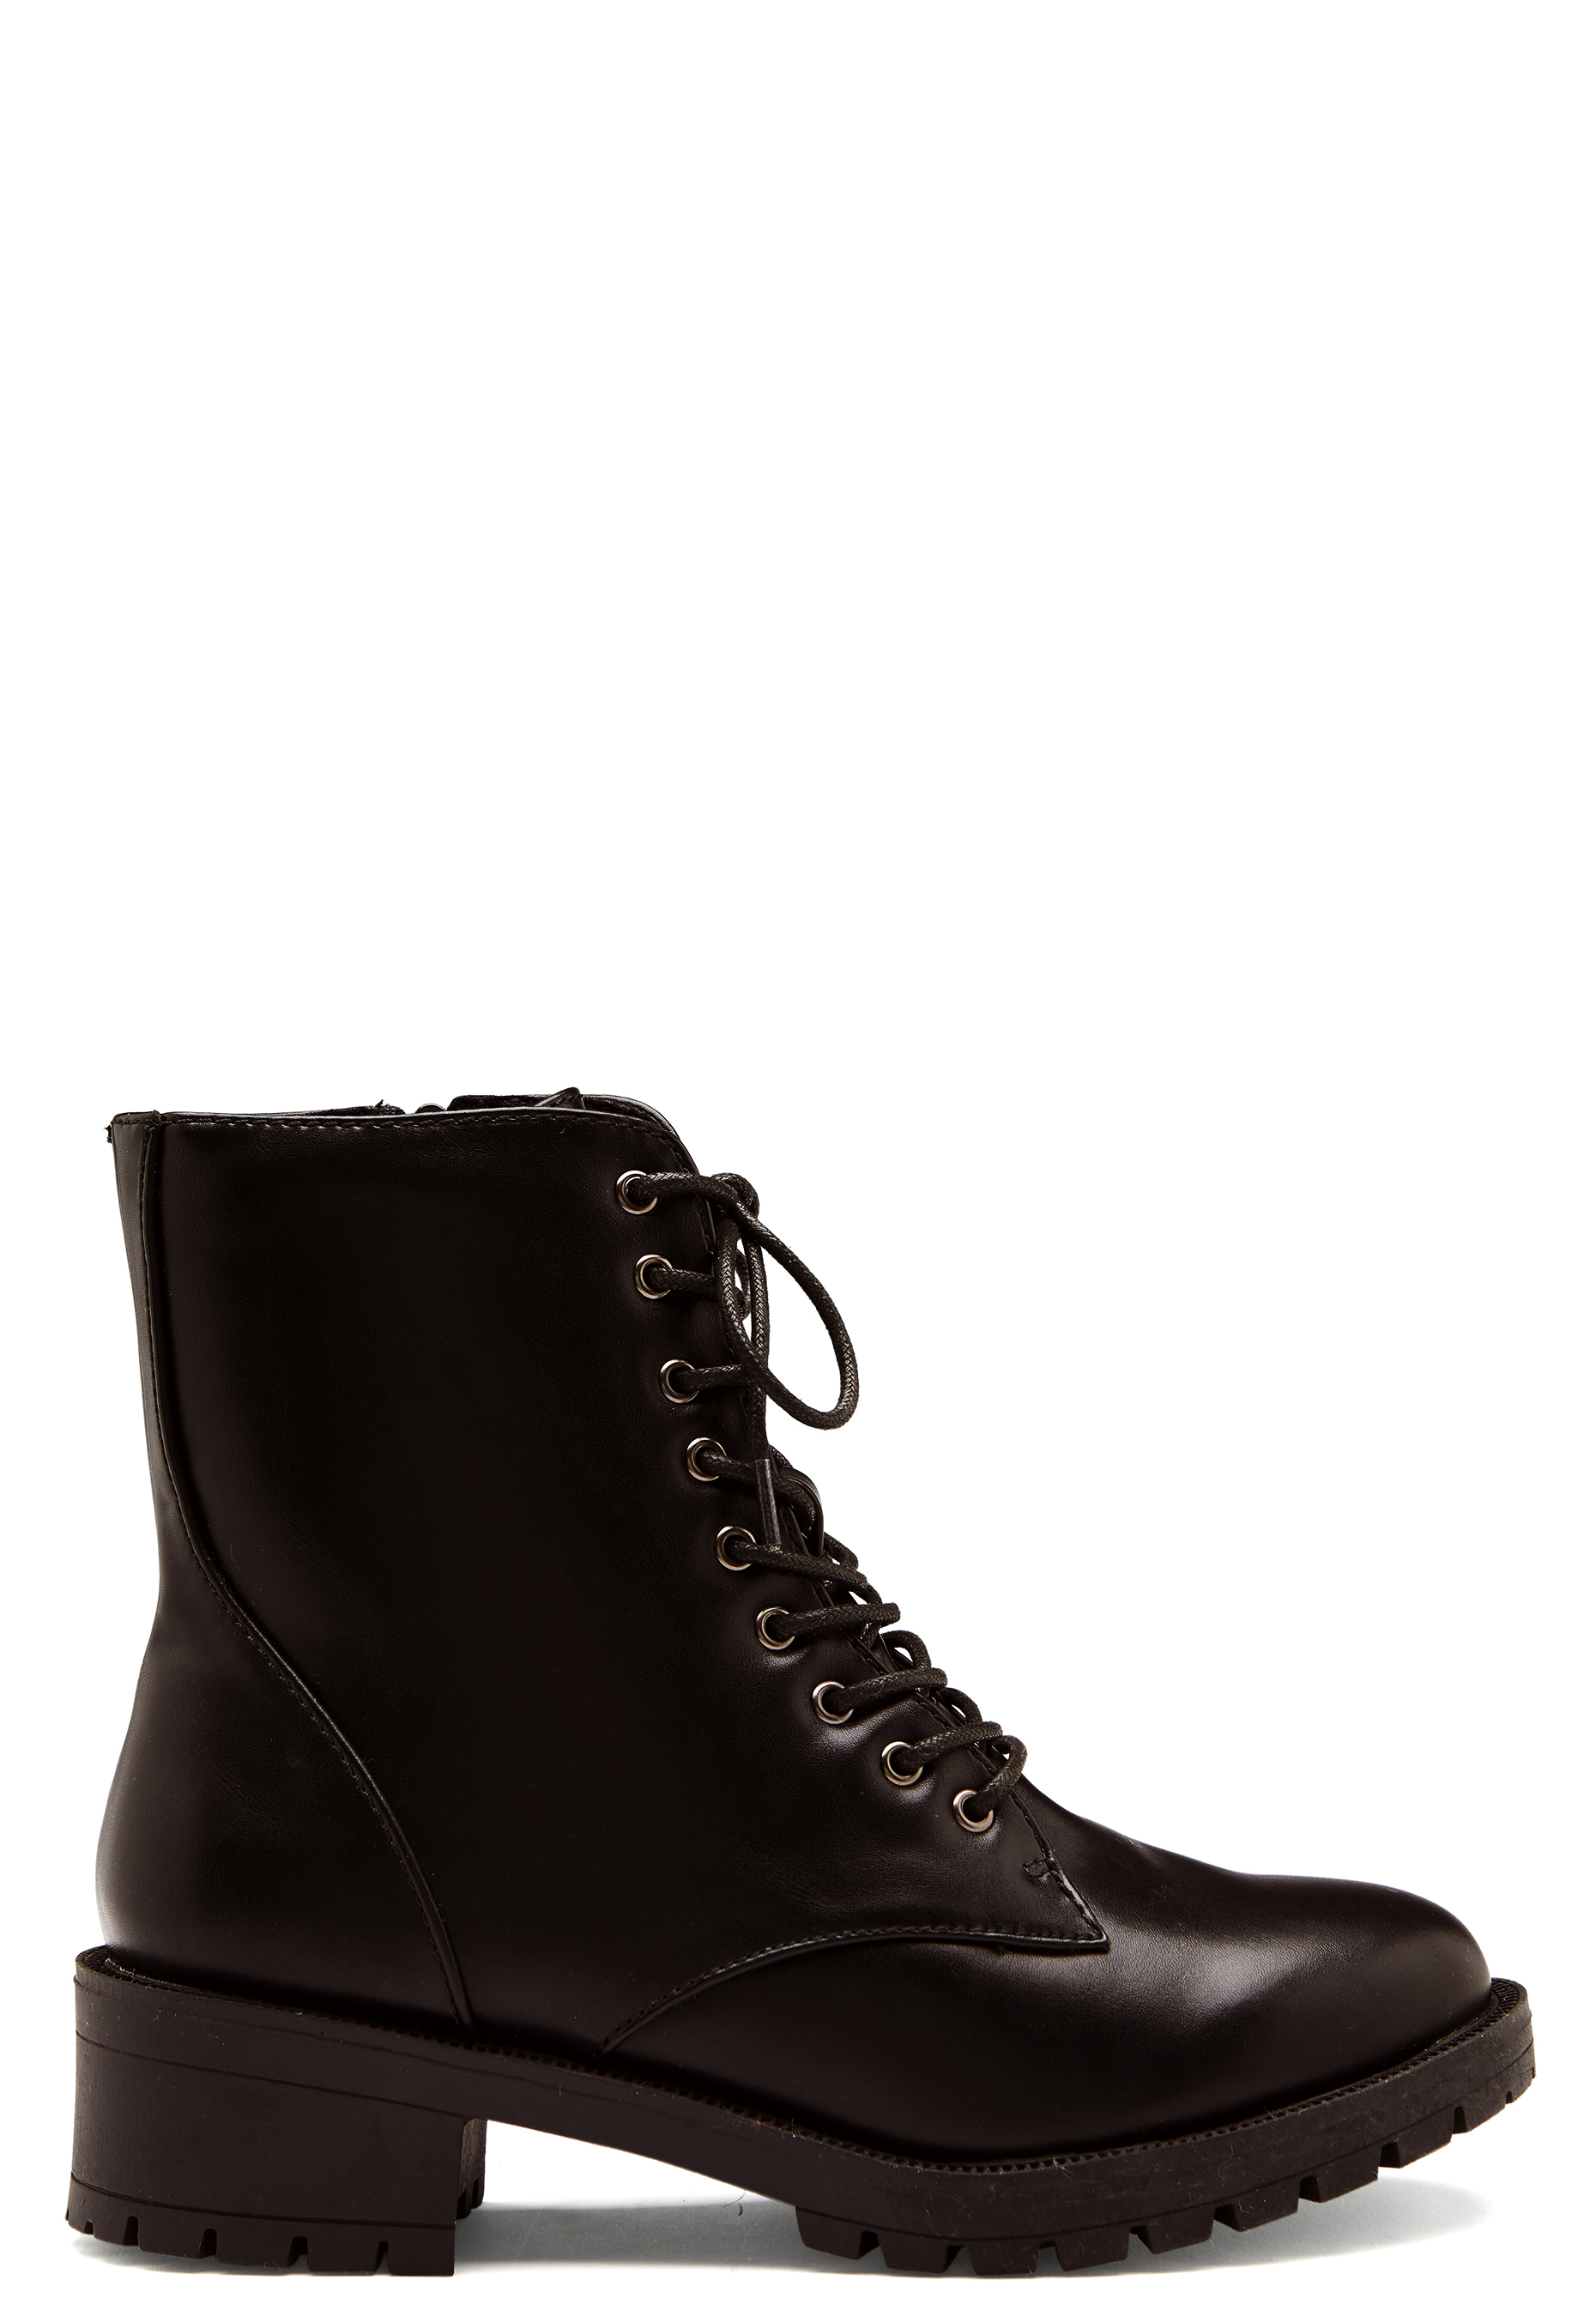 bianco claire laced up boots black 2